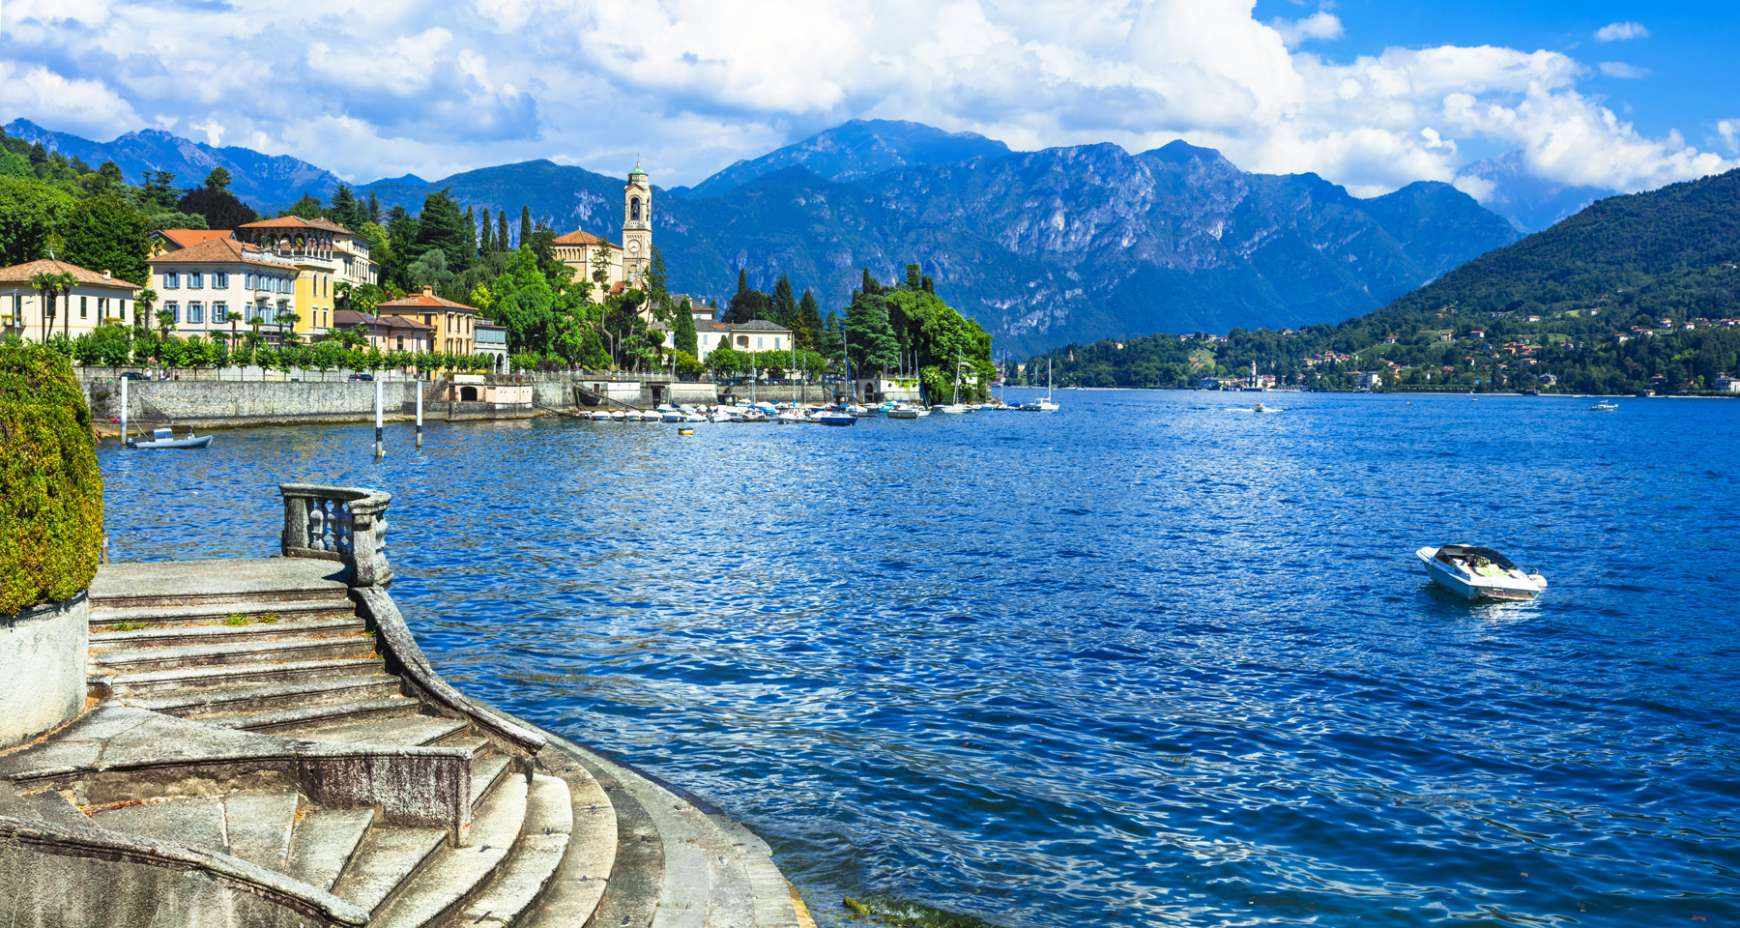 Summer view of Lake Como with mountains in the background